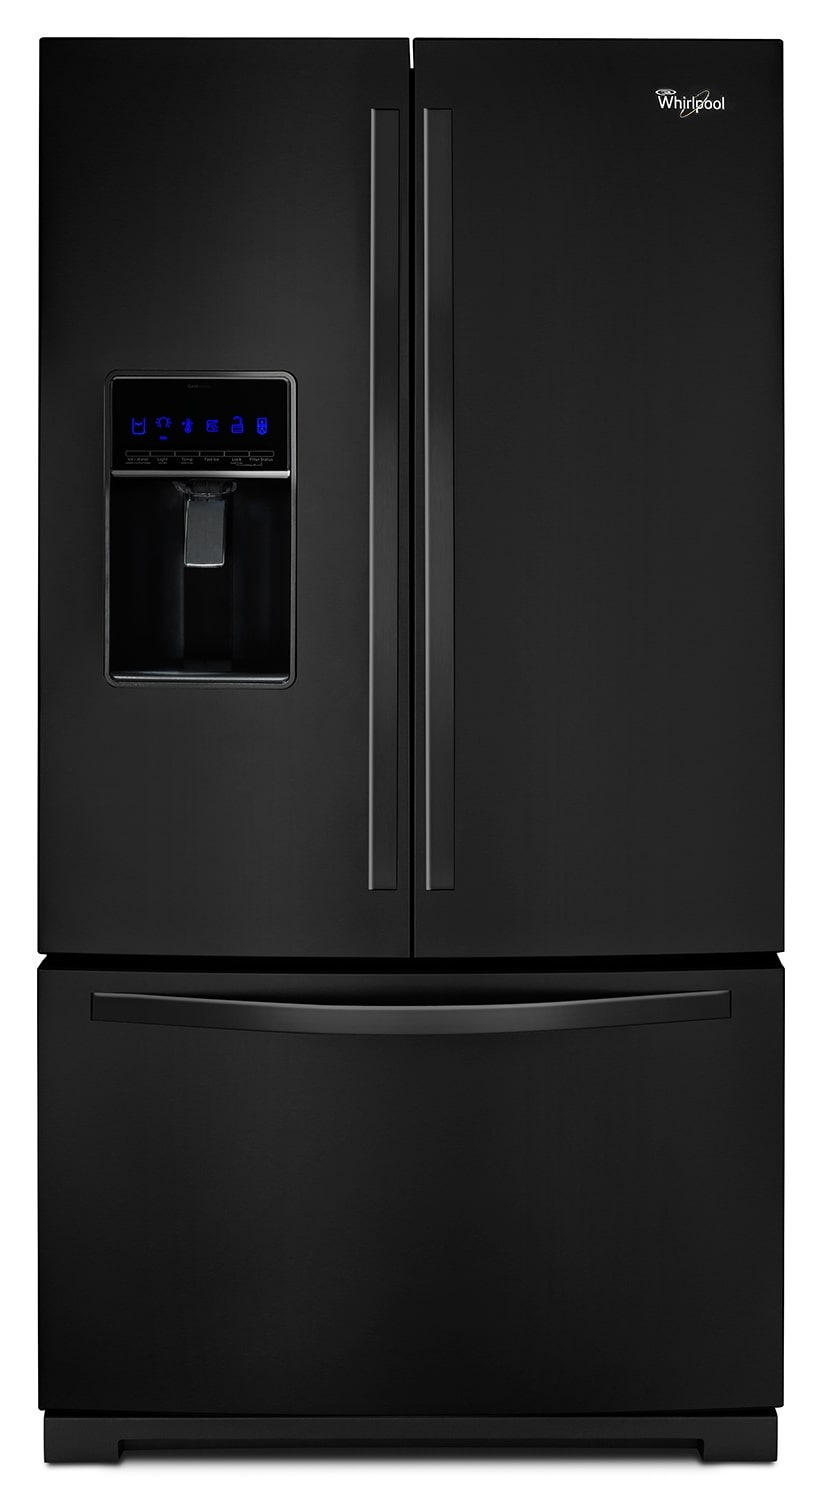 Whirlpool Black French Door Refrigerator (24.7 Cu. Ft.) - WRF736SDAB